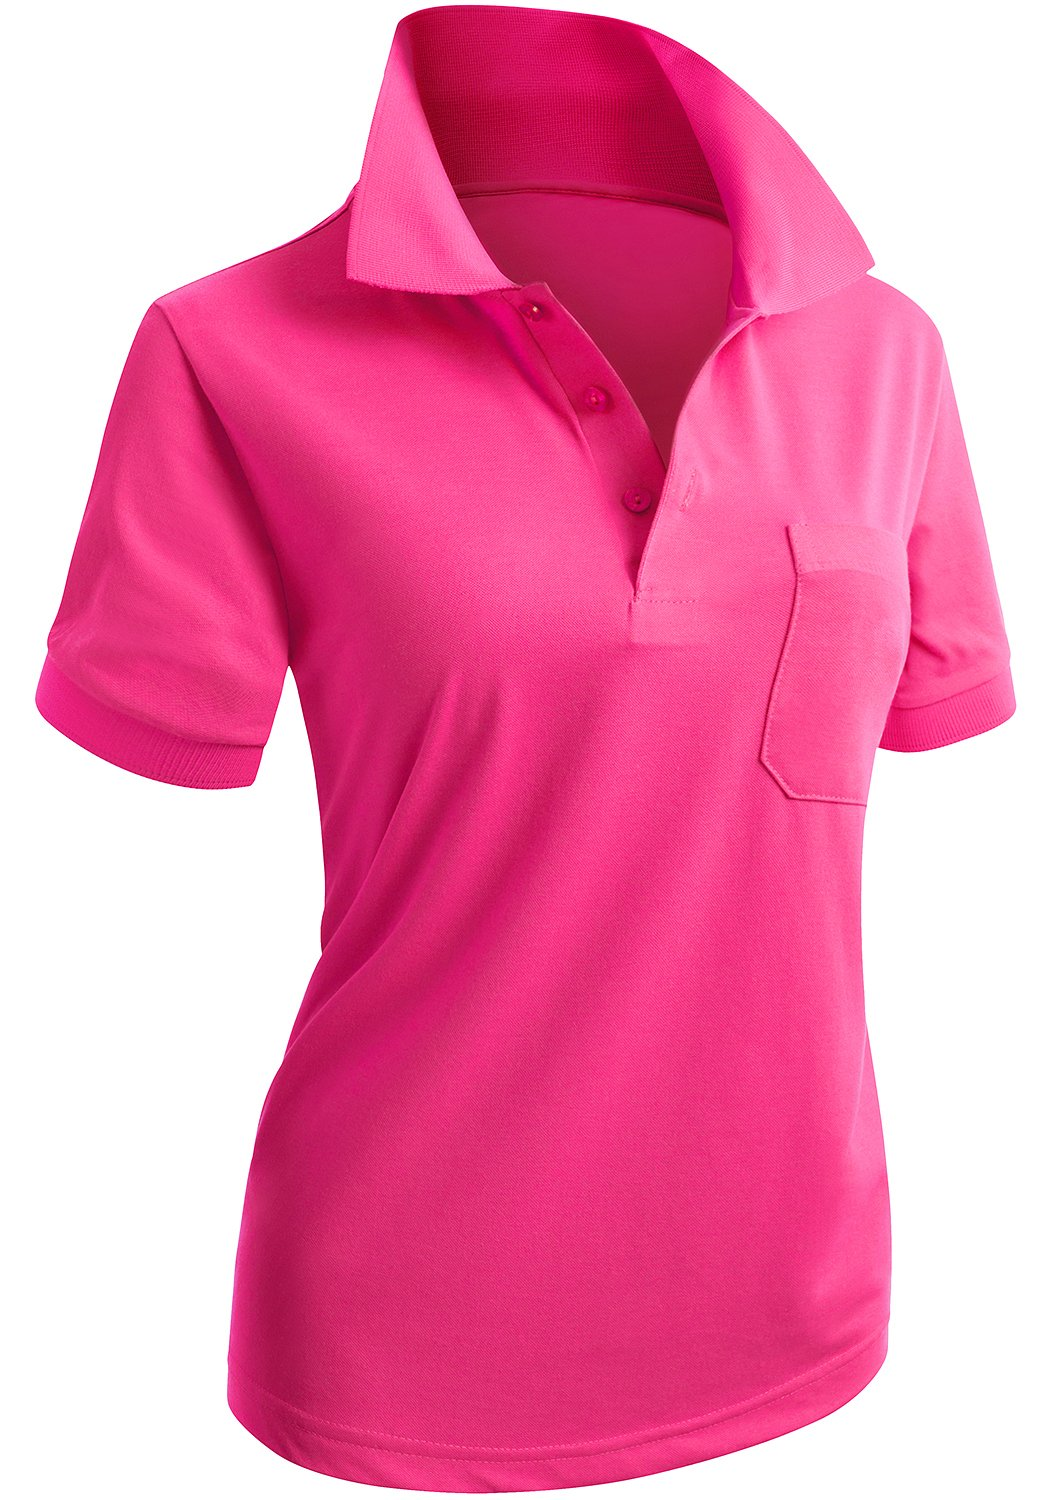 CLOVERY Women's Solid Short Sleeve Basic Polo Shirts Pink US XXL/Tag XXXL by CLOVERY